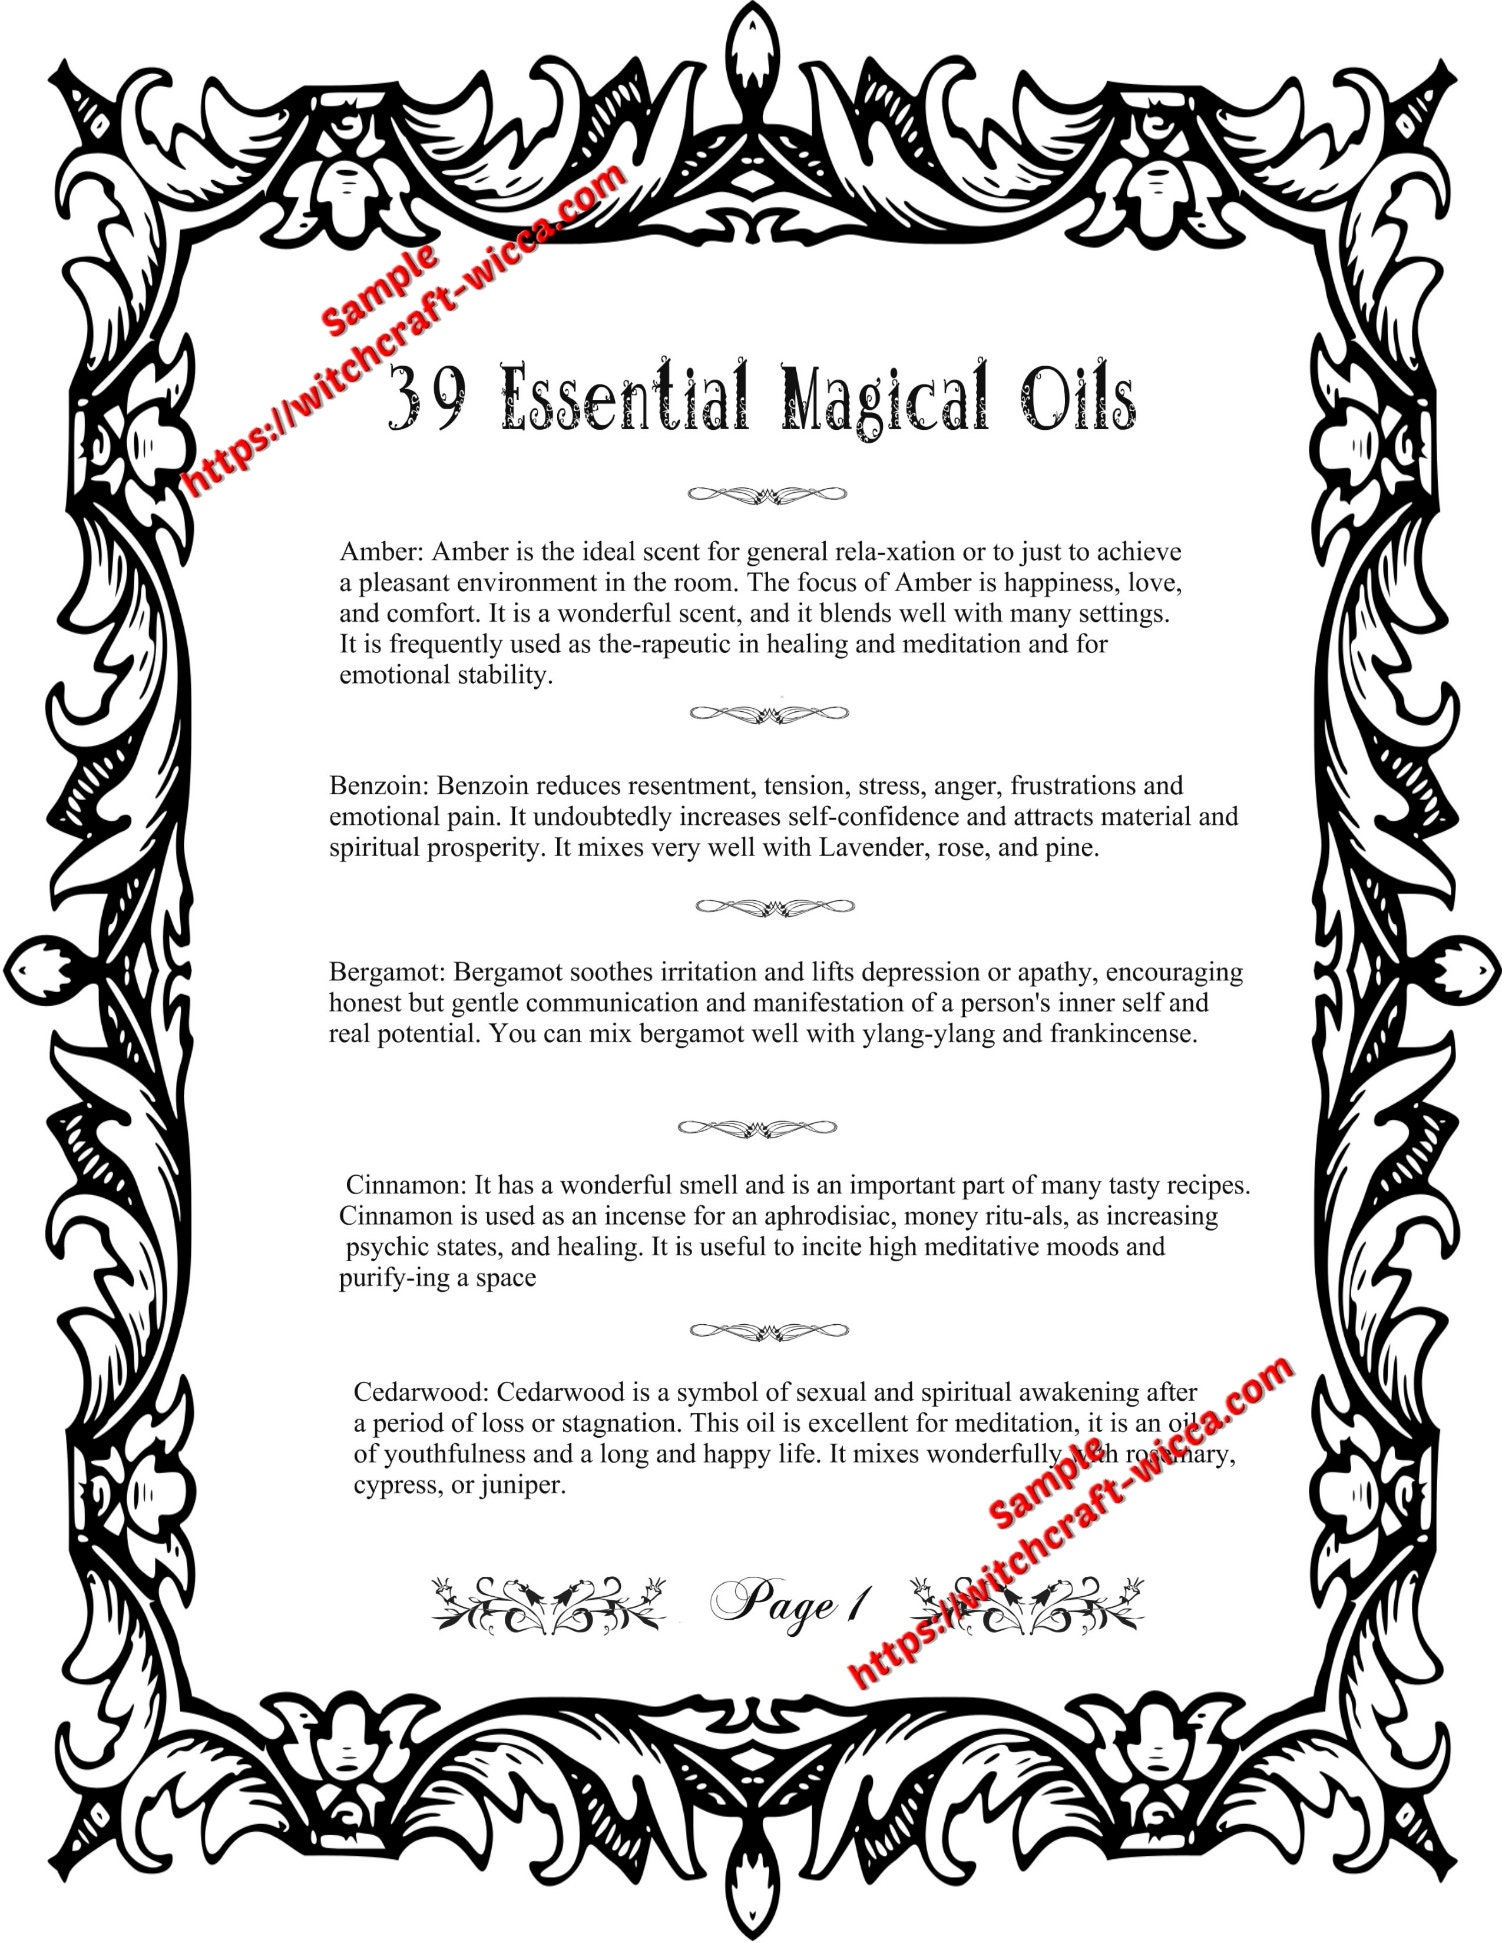 graphic relating to Printable Book of Shadows called Printable Reserve of Shadows 8 Internet pages for Coloring 39 Magic Crucial Oils and How toward Employ the service of Them for Spells- (8 PDFs)